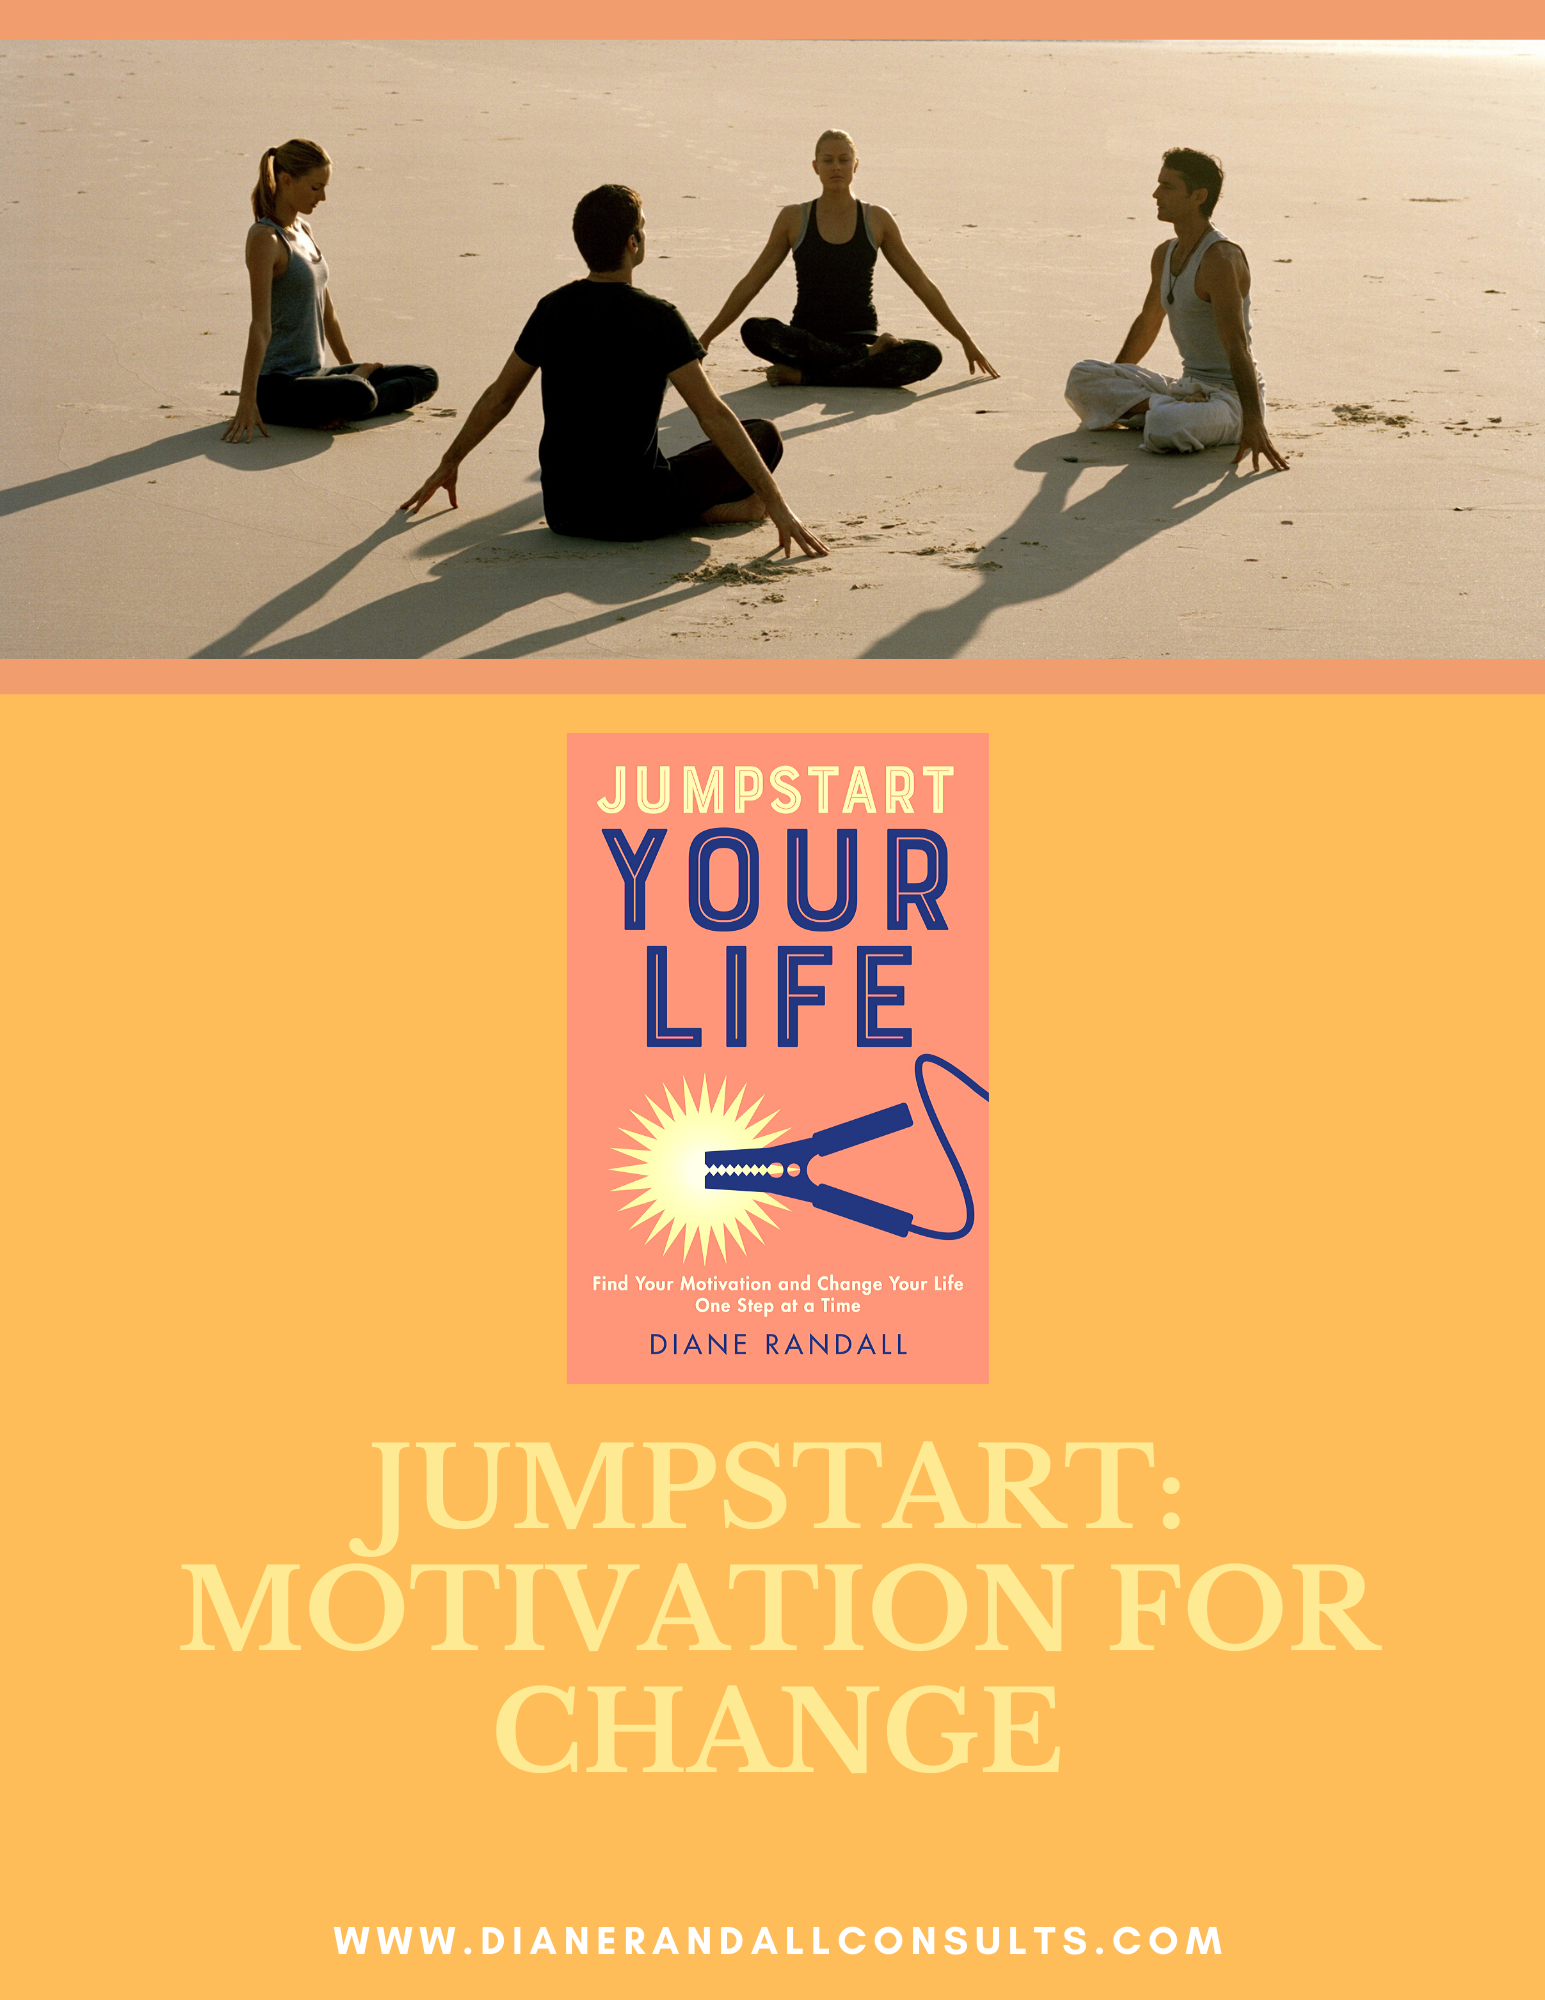 Jumpstart Your Life Book Release